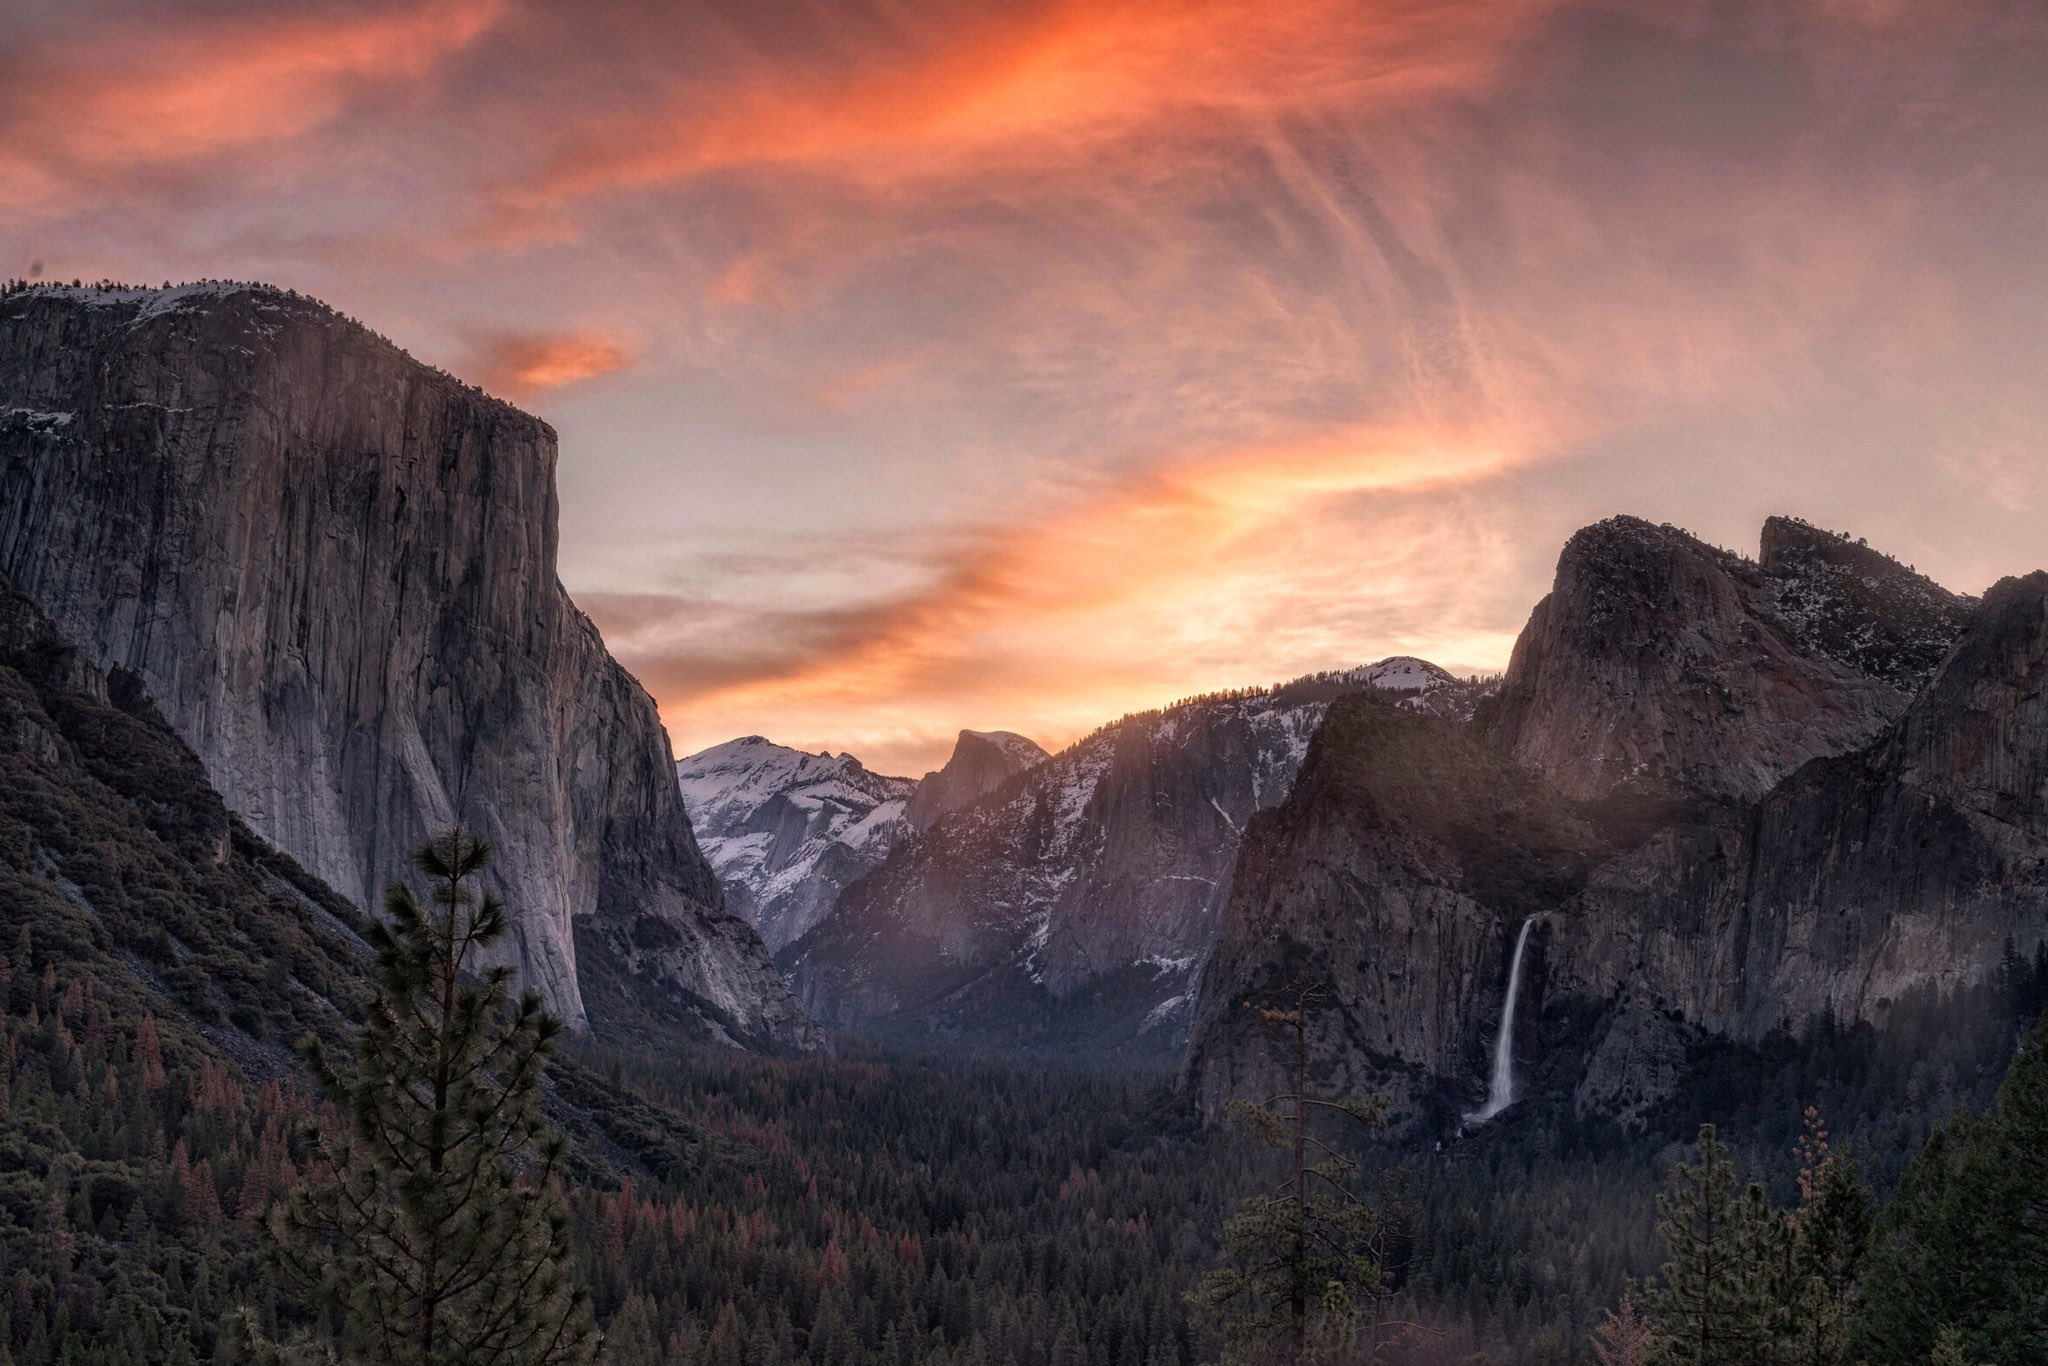 We never get tired of these Tunnel View sunrises @YosemiteNPS. Pic by David Laurence Sharp #California https://t.co/efdHuWif31